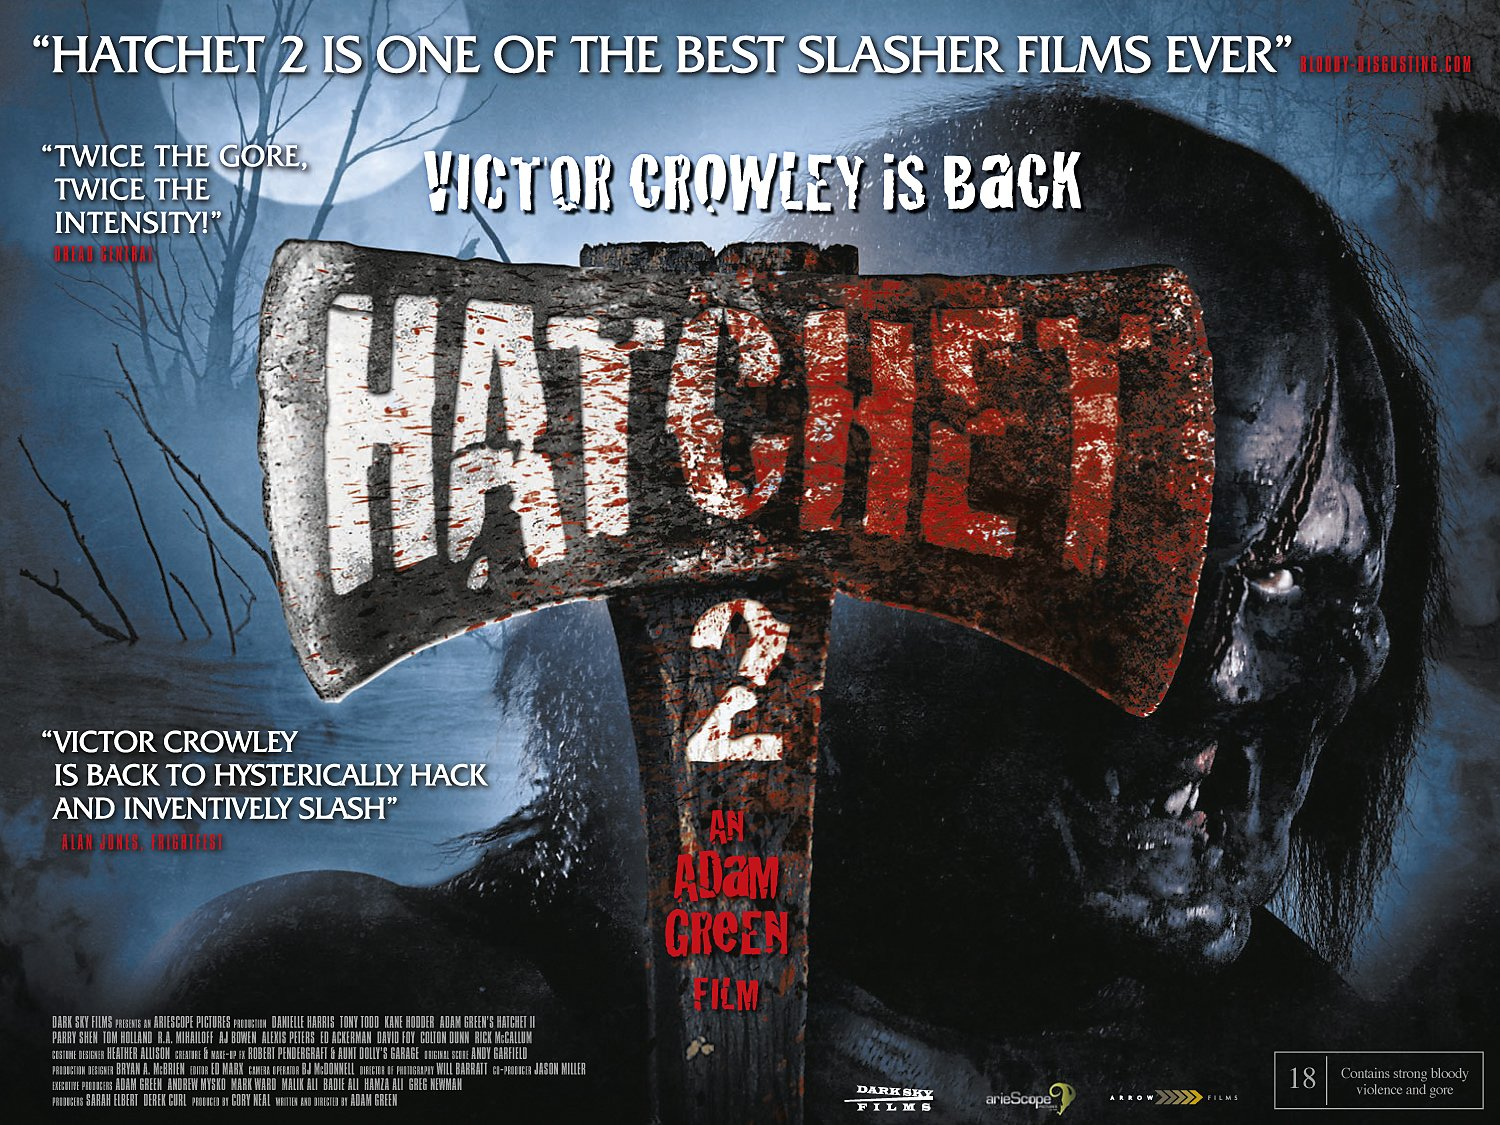 Film hatchet 2 gratis download.